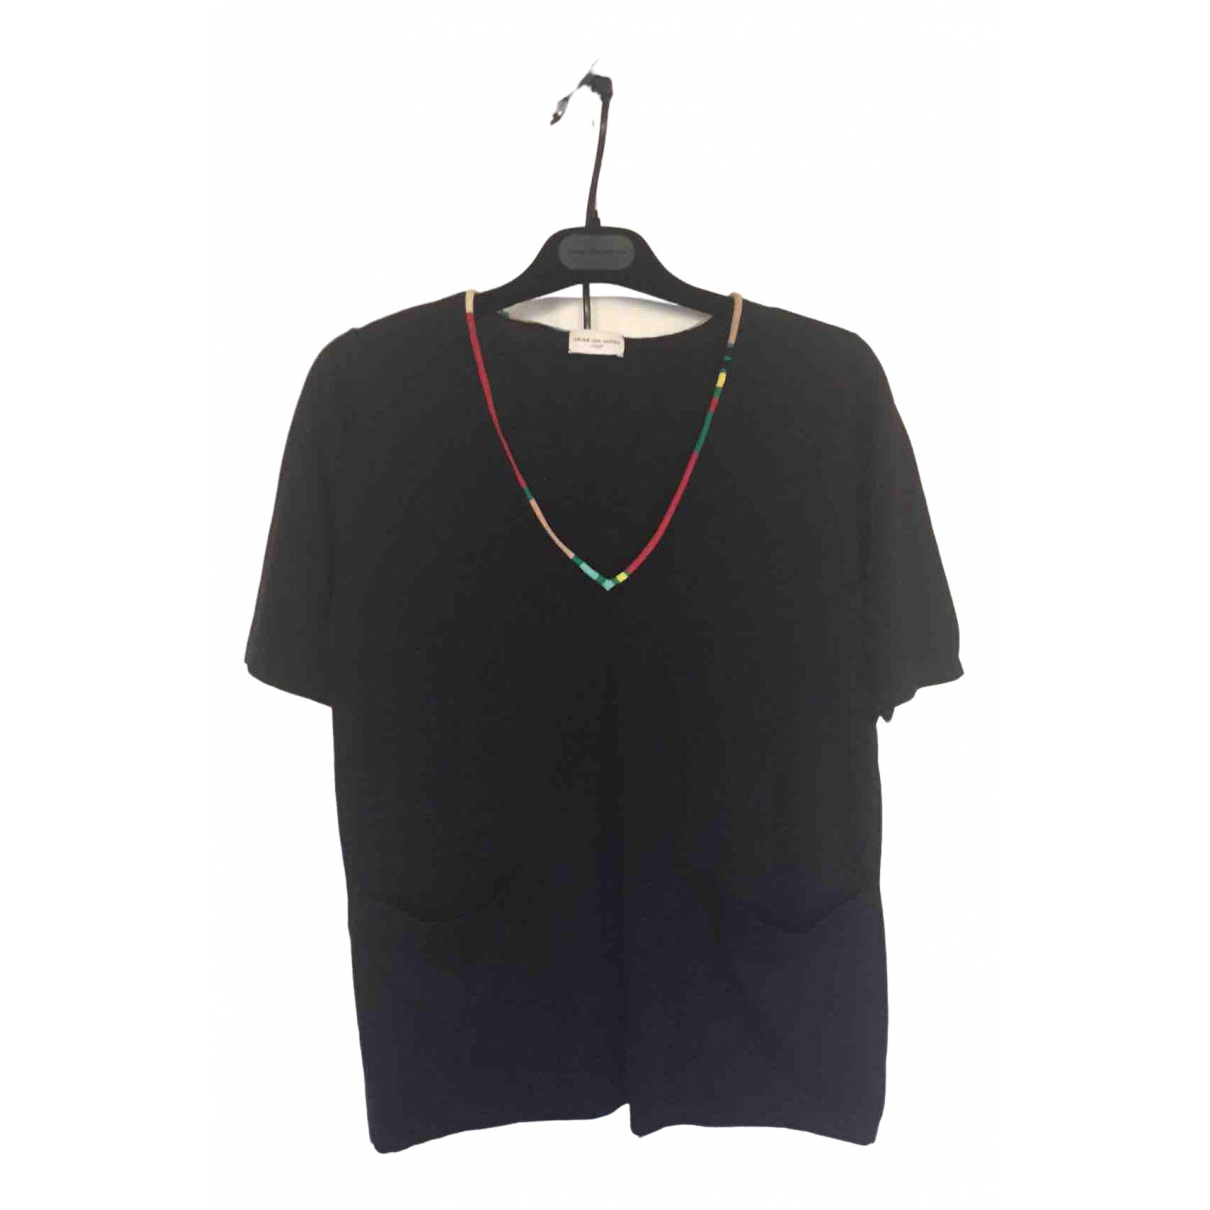 Dries Van Noten \N Top in  Schwarz Wolle